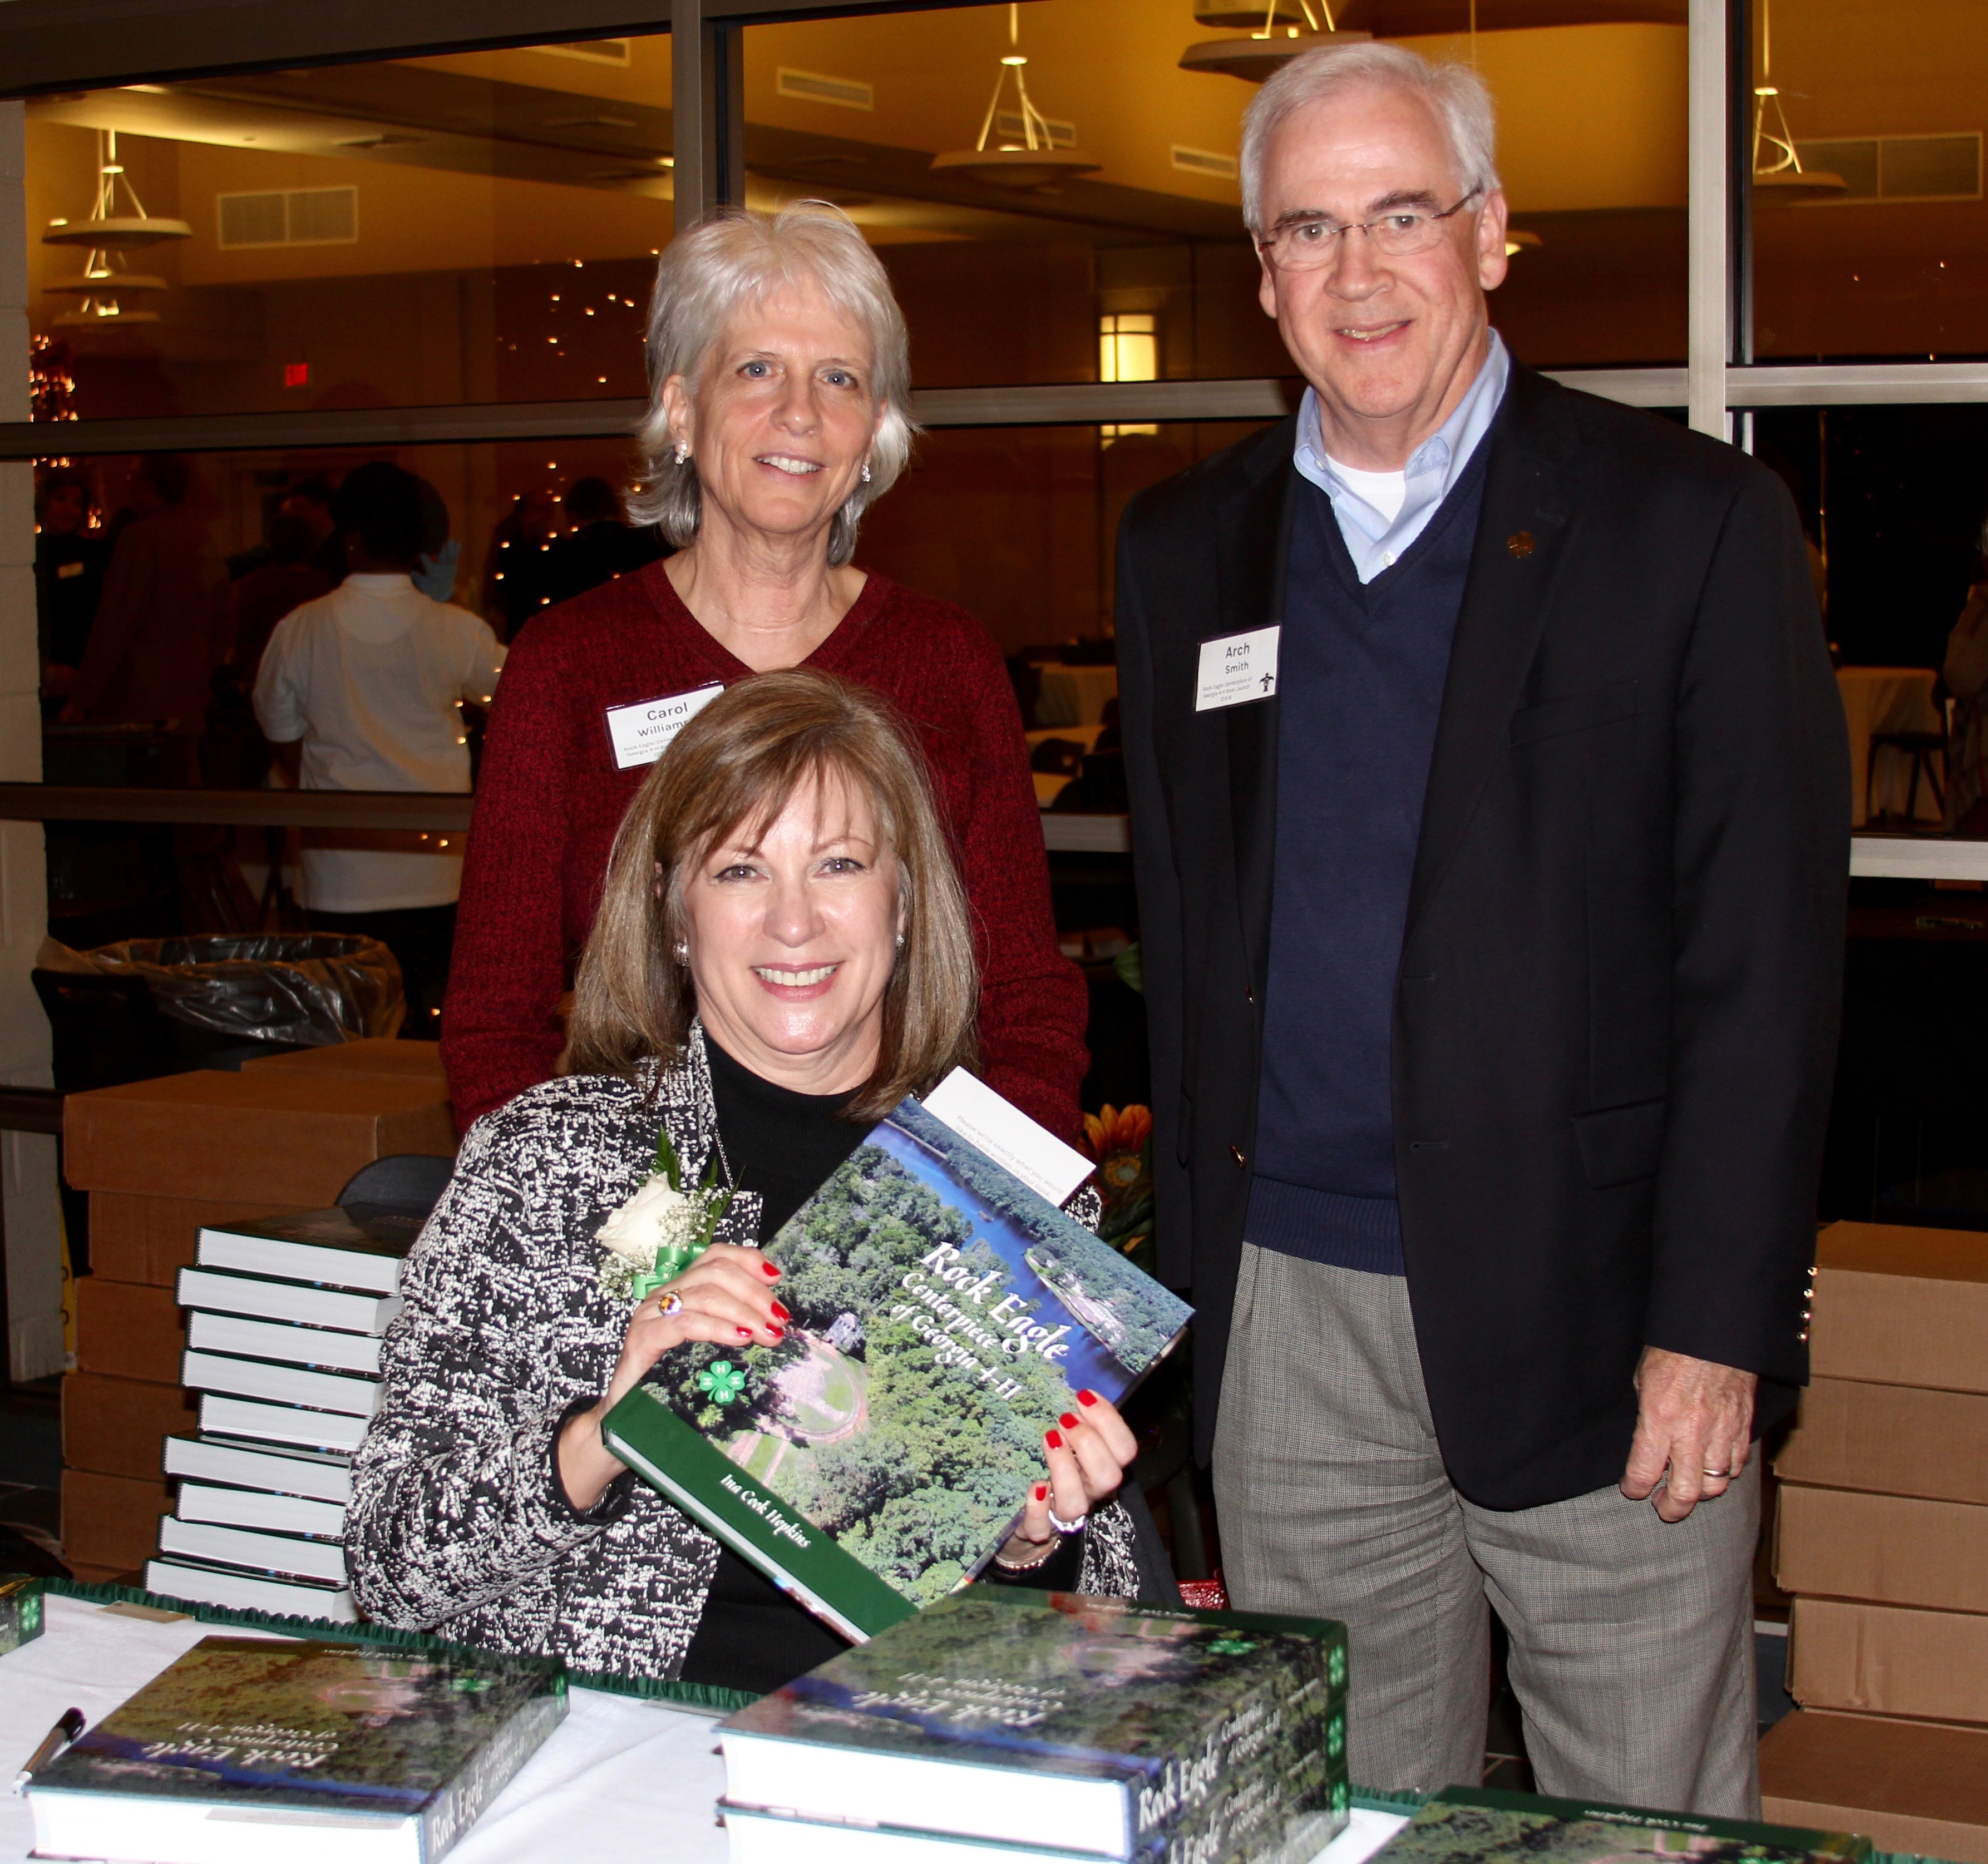 """It took author Ina Cook Hopkins more than nine years to compile data, interview key players, write the text and work with designer Carol Williamson to complete a history book about Rock Eagle 4-H Center. A former Walton County 4-H'er, Hopkins refers to the book as her last 4-H record book and a """"tangible way to give back to the organization that means so much"""" to her. She is pictured (seated) with the book's designer, Carol Williamson (standing left), and Georgia 4-H State Leader Arch Smith."""